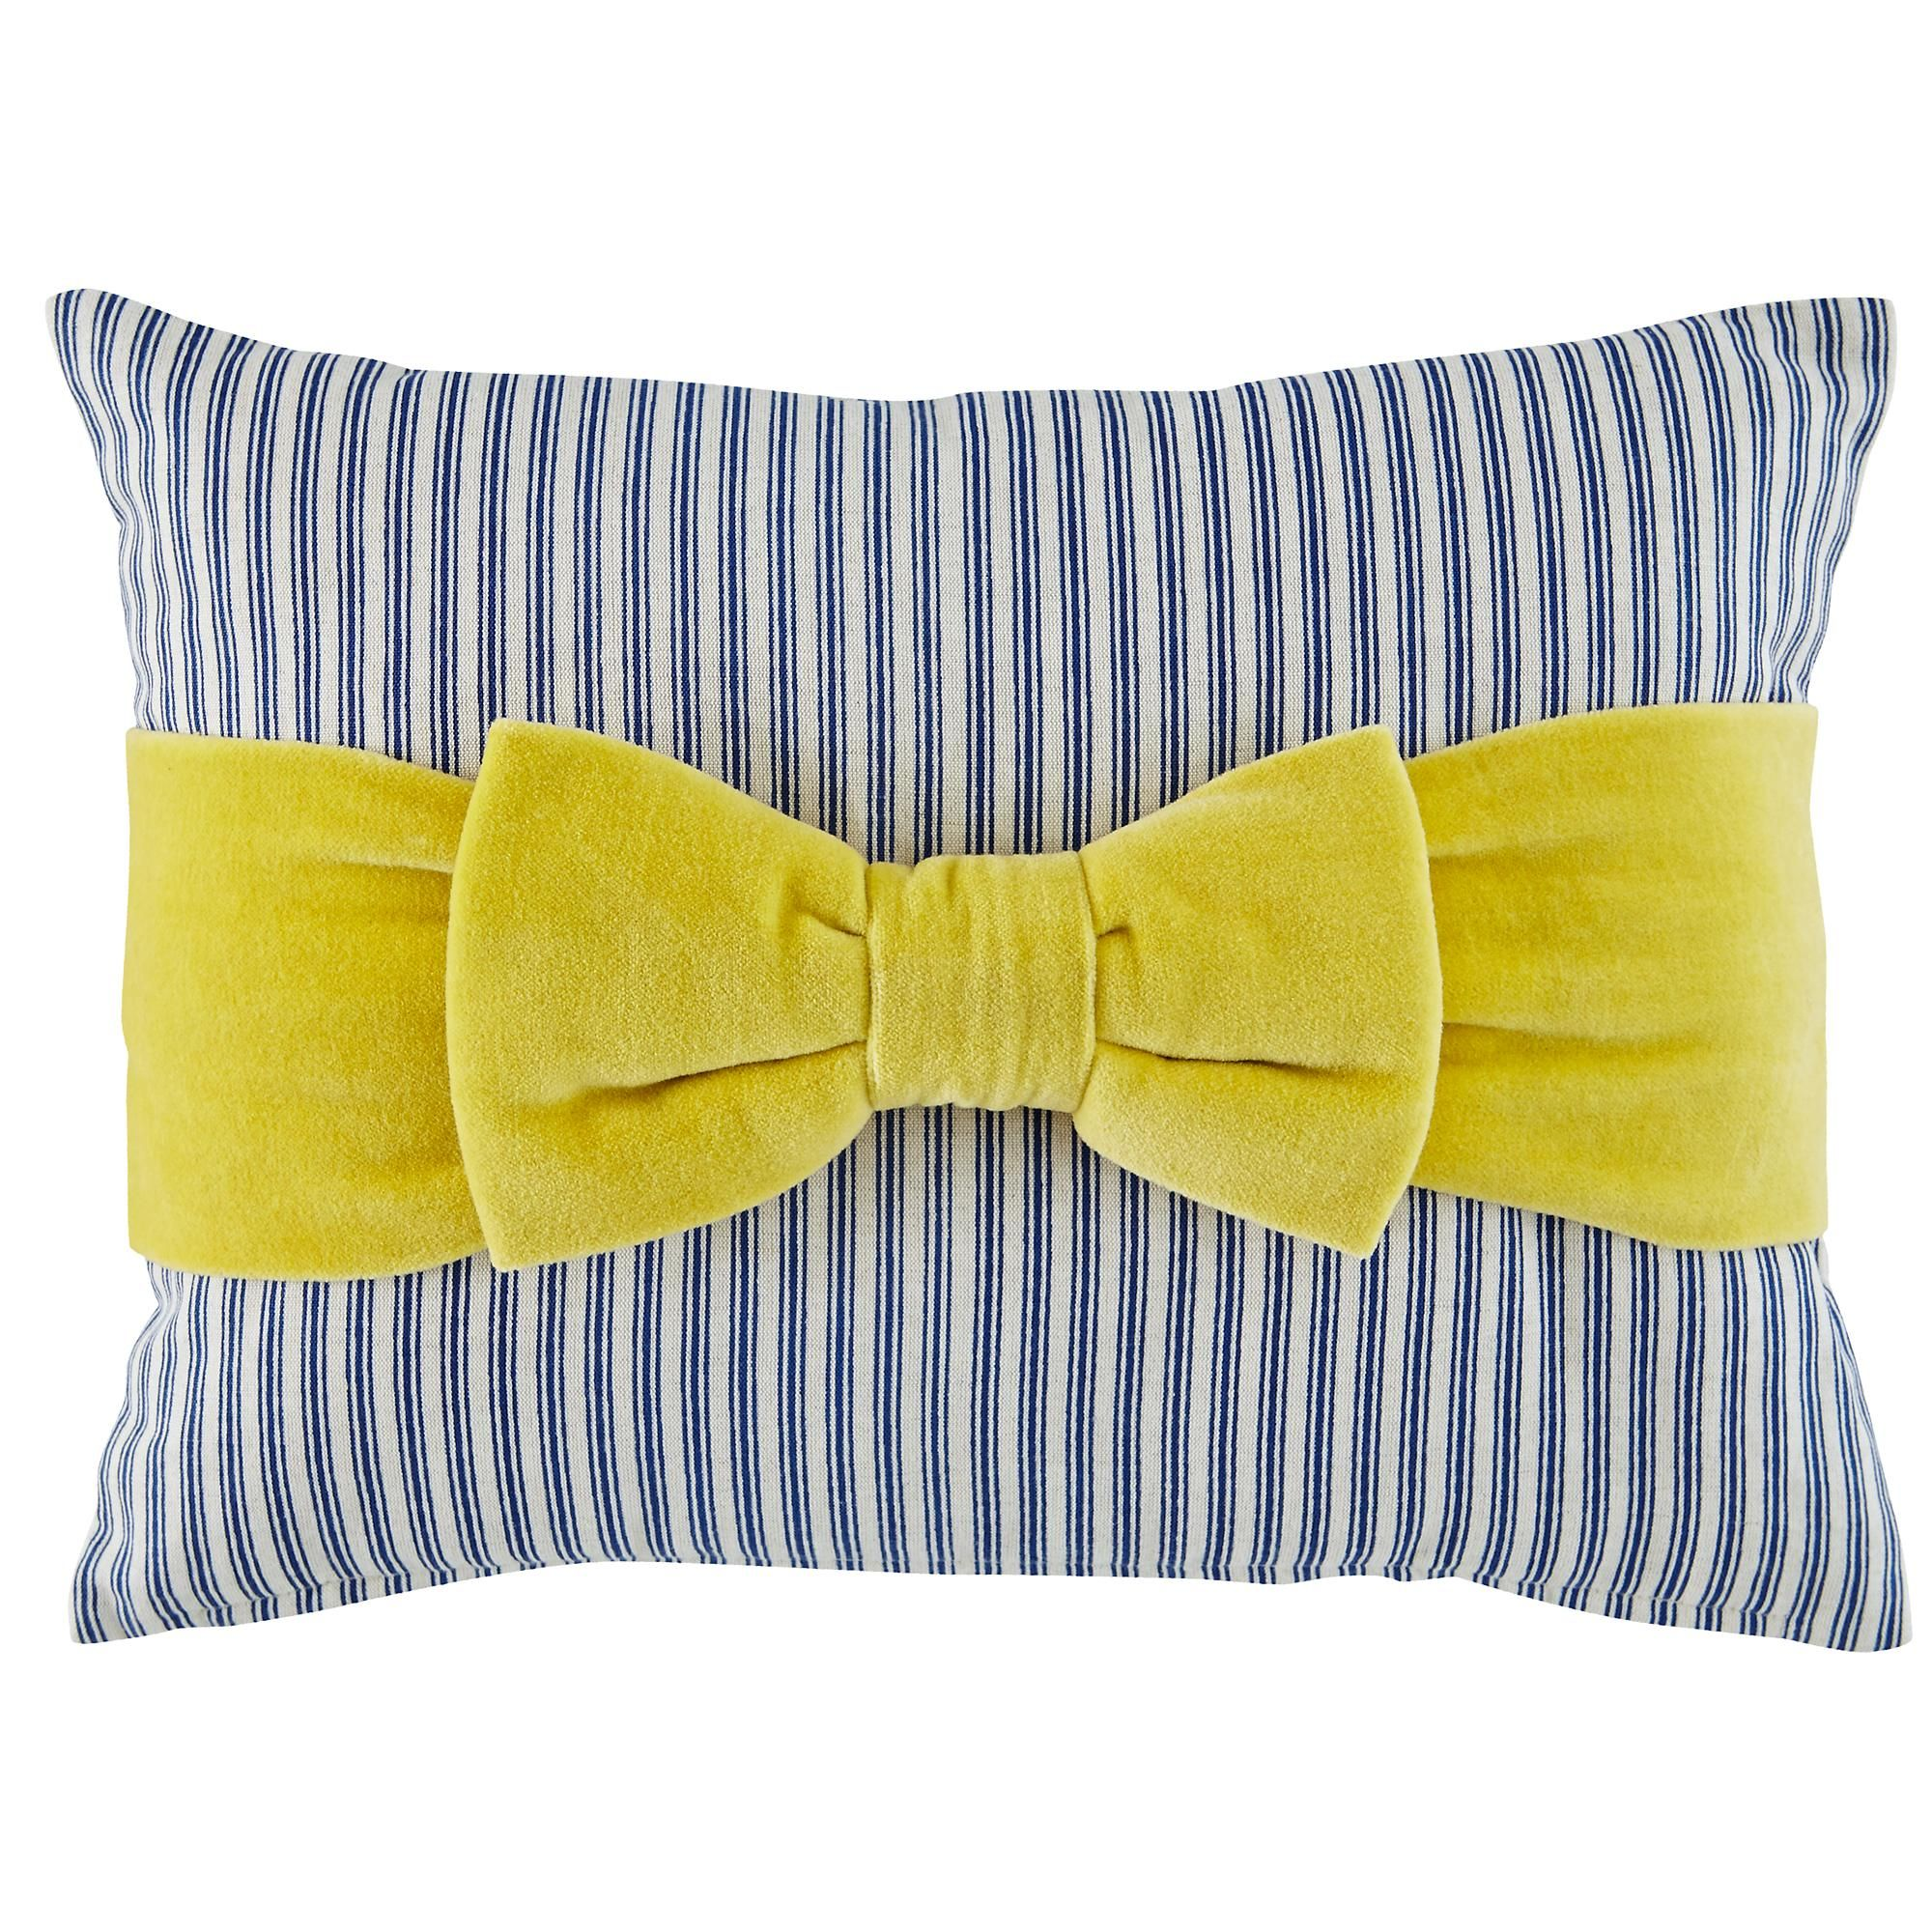 The Land of Nod | Kids Pillows: Striped Ribbon Throw Pillow in New Kids Bedding